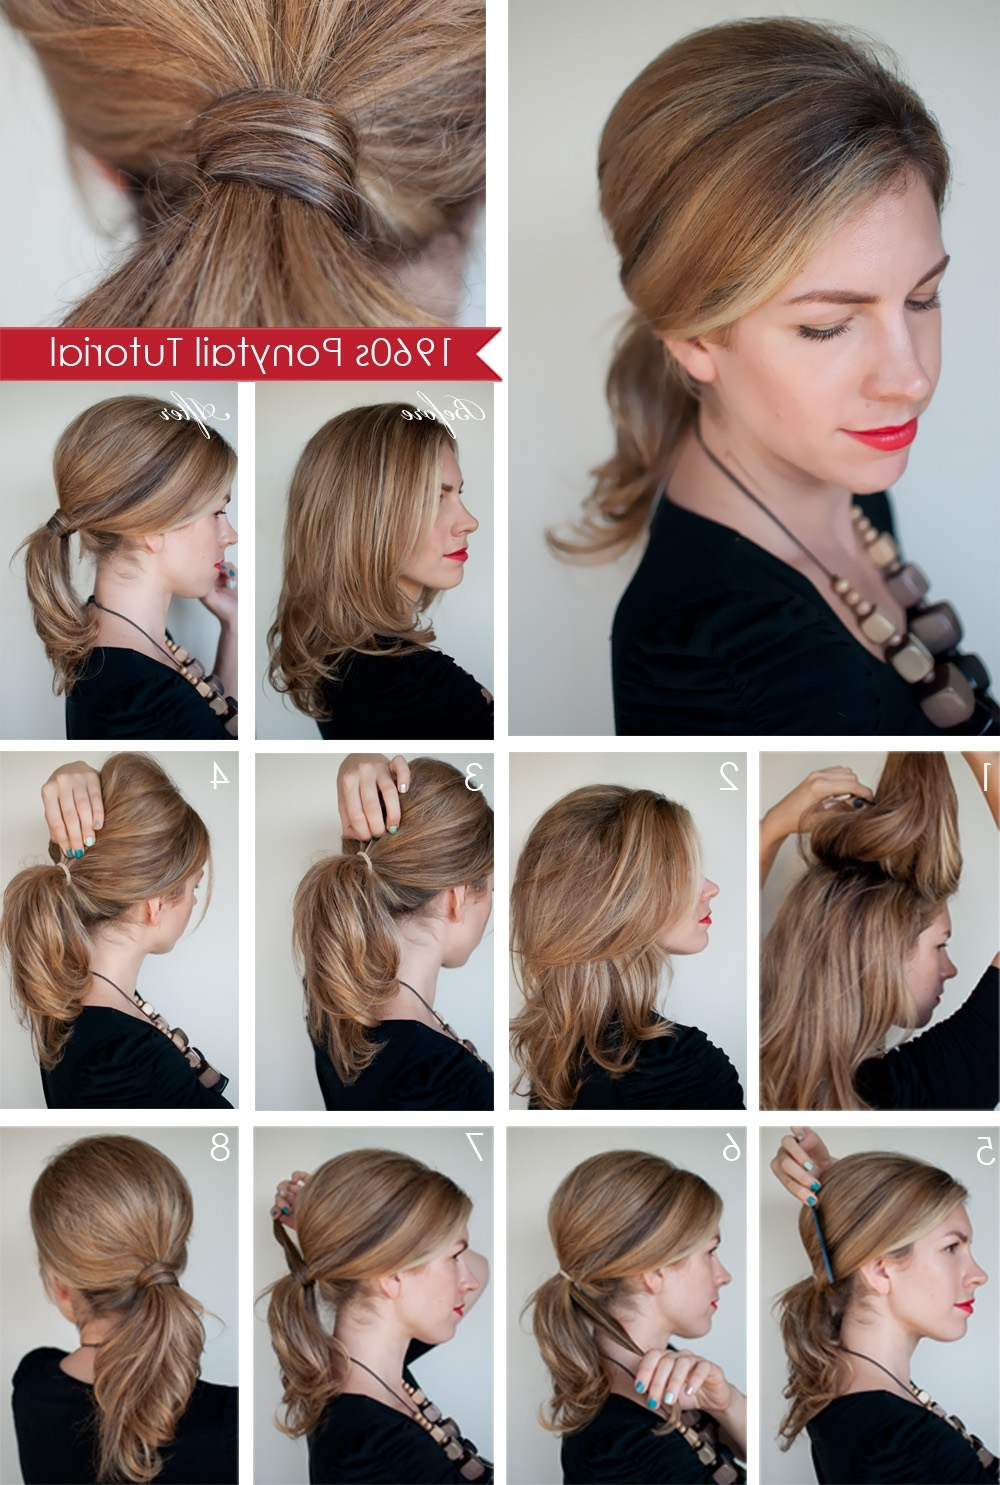 Favorite Pony Hairstyles With Wrap Around Braid For Short Hair With Regard To Hairstyle How To: Create A 1960s Style Ponytail – Hair Romance (View 3 of 20)